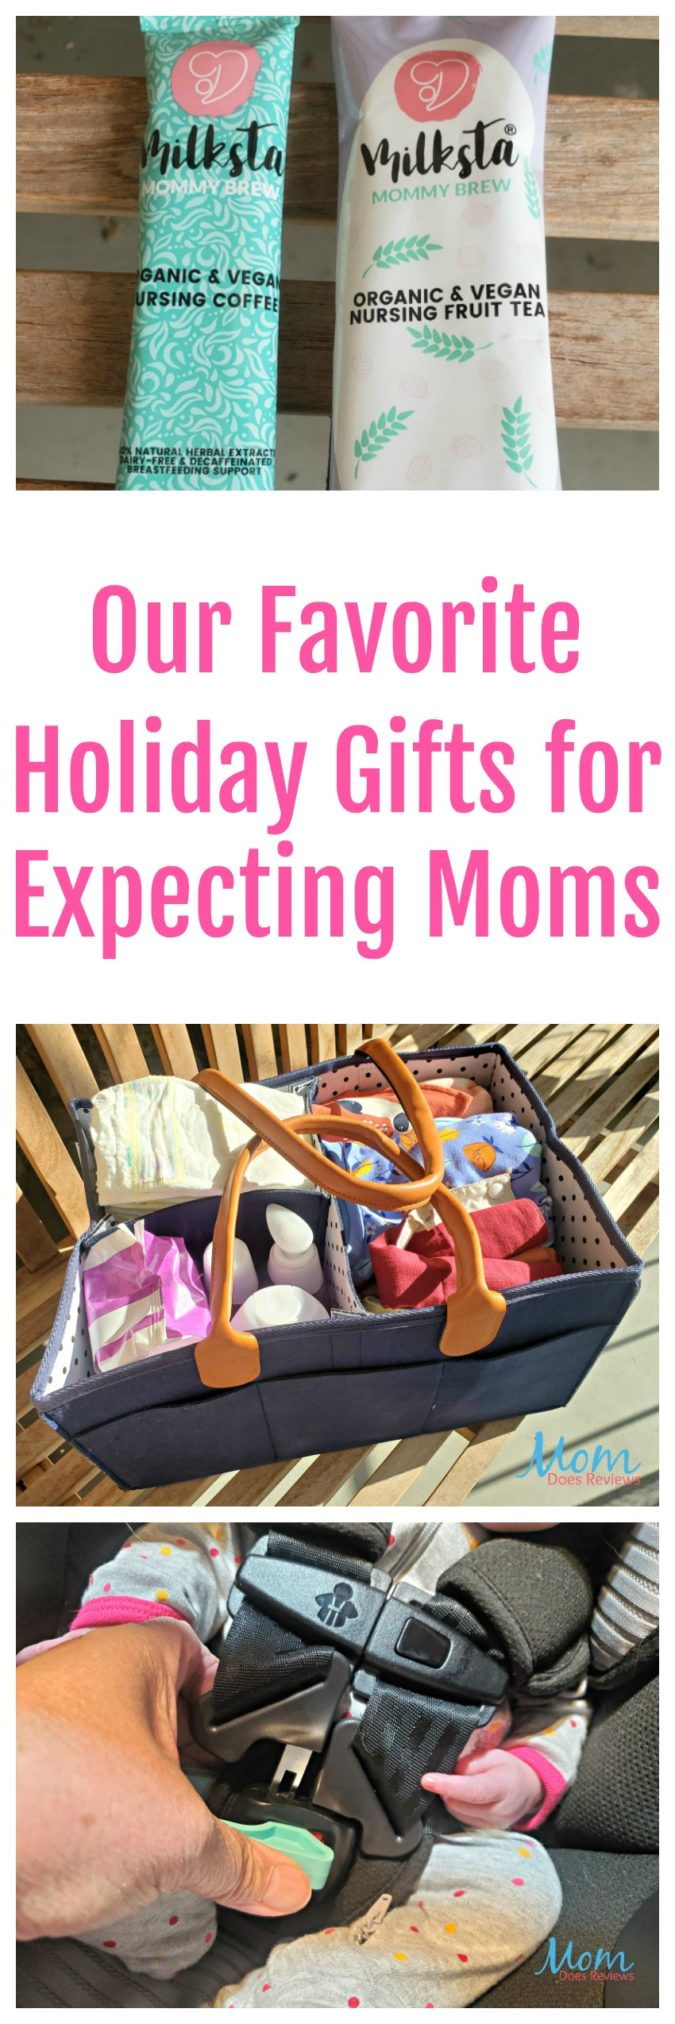 Our Favorite Holiday Gifts for Expecting Moms